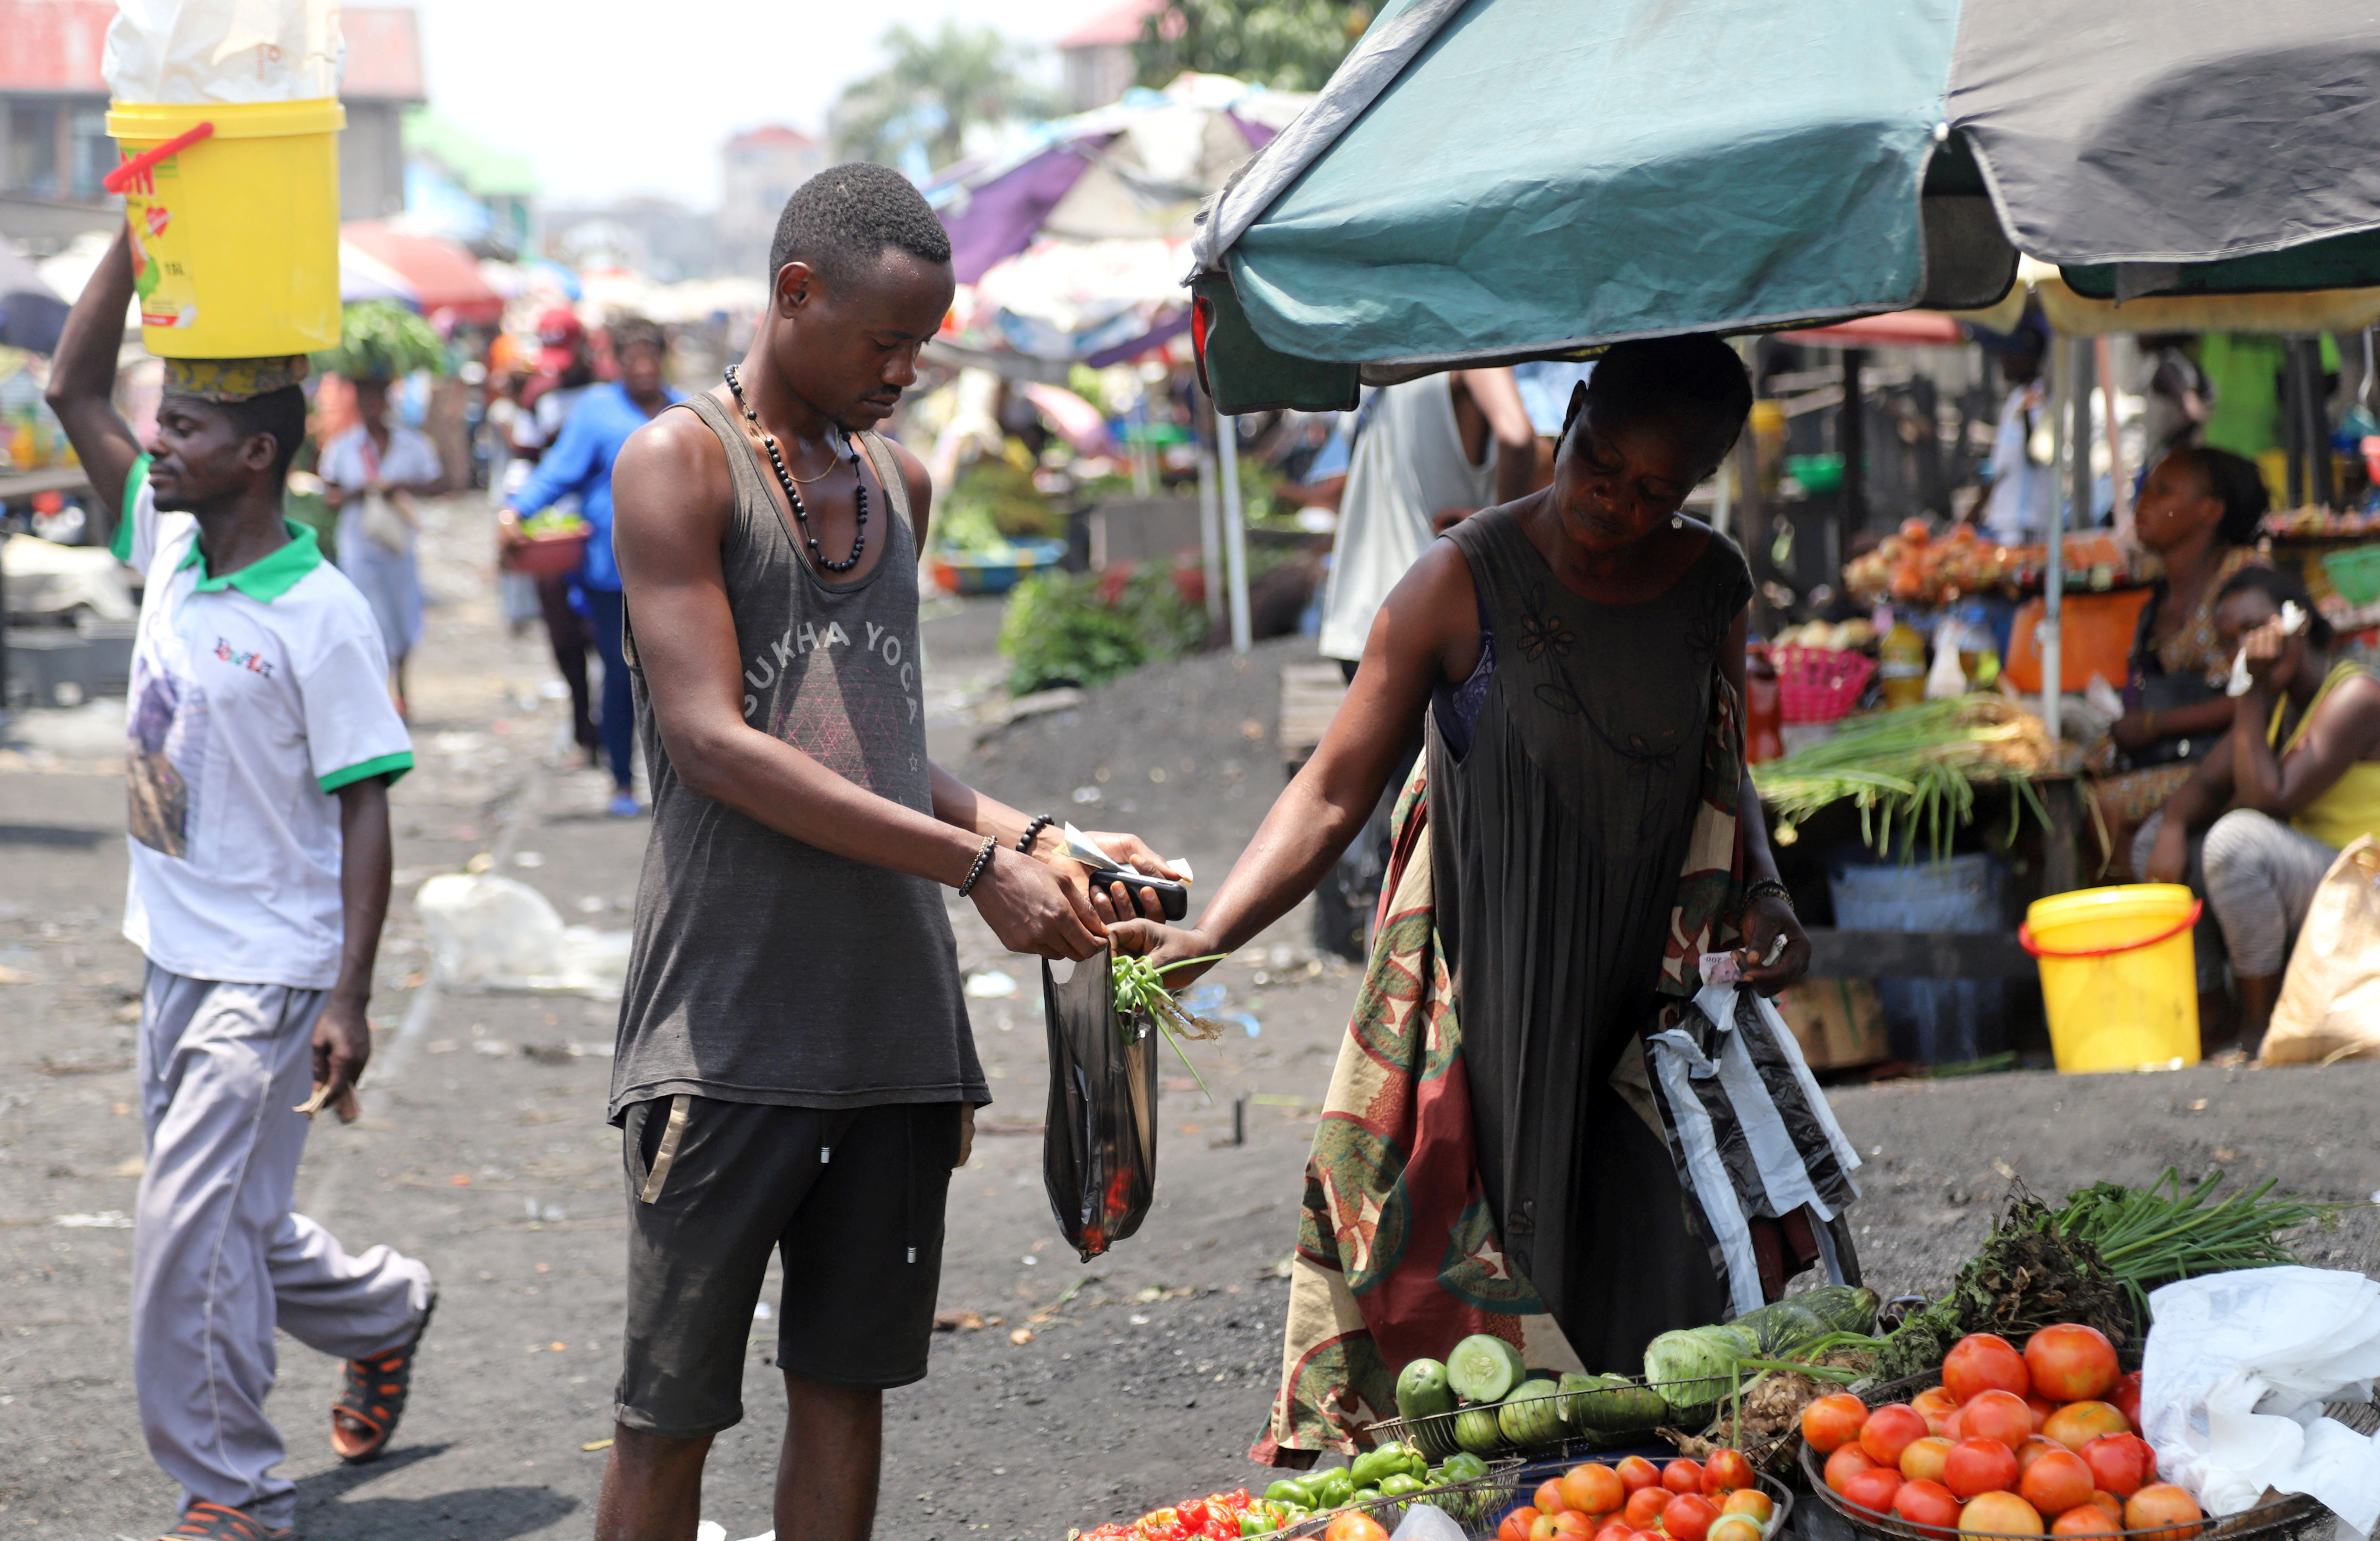 FILE PHOTO: A Congolese man buys groceries at an open air market, amid concerns about the spread of coronavirus disease (COVID-19) in Kinshasa, Democratic Republic of Congo, March 28, 2020. REUTERS/Kenny Katombe/File Photo